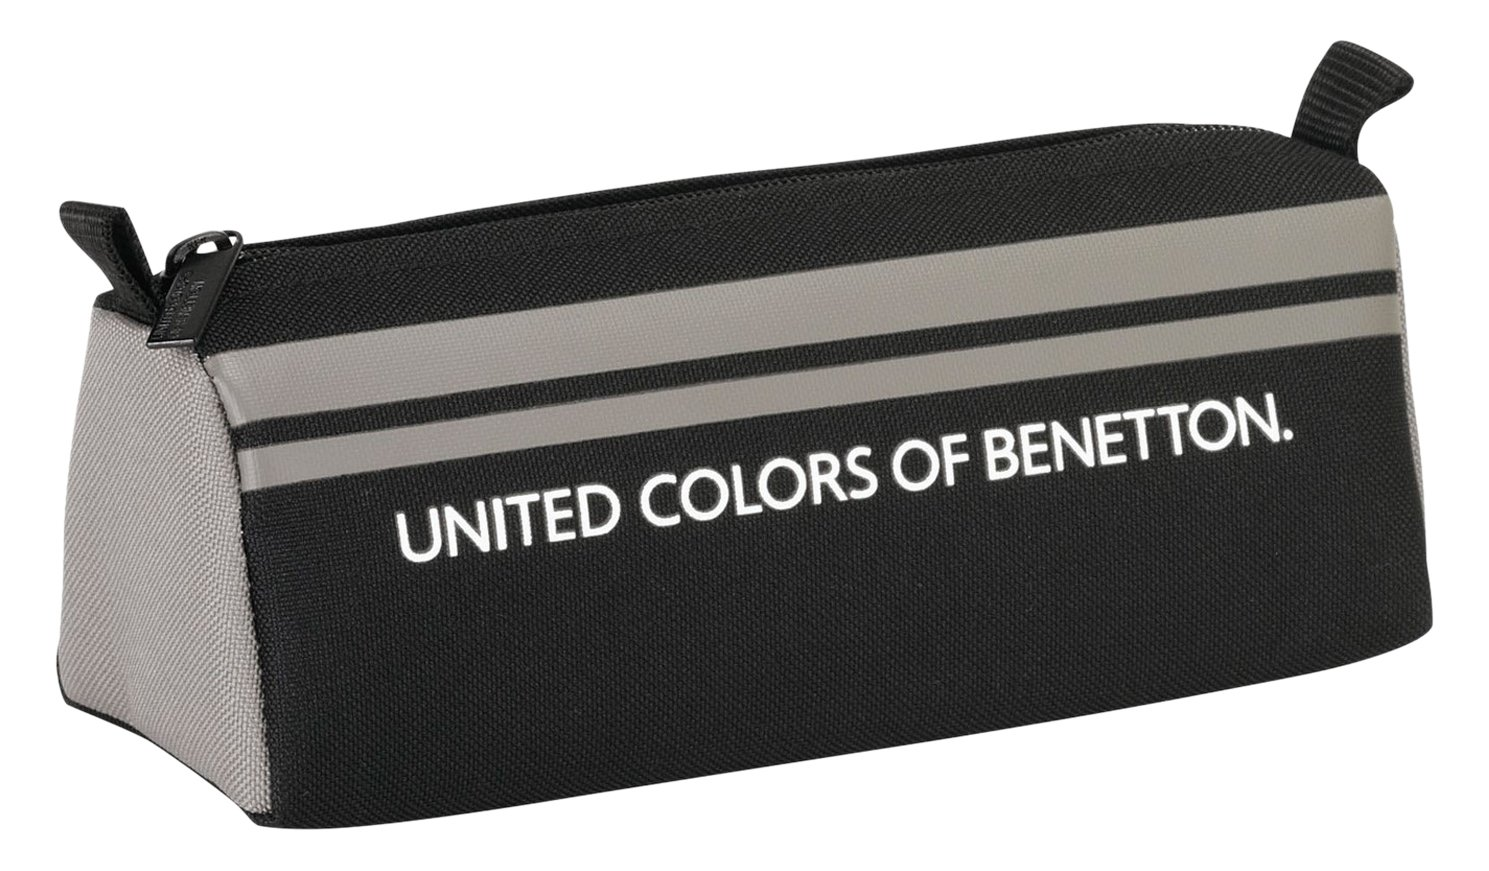 United Colors Of Benetton- Benetton Estuche portatodo, Color Negro (SAFTA 811606742)